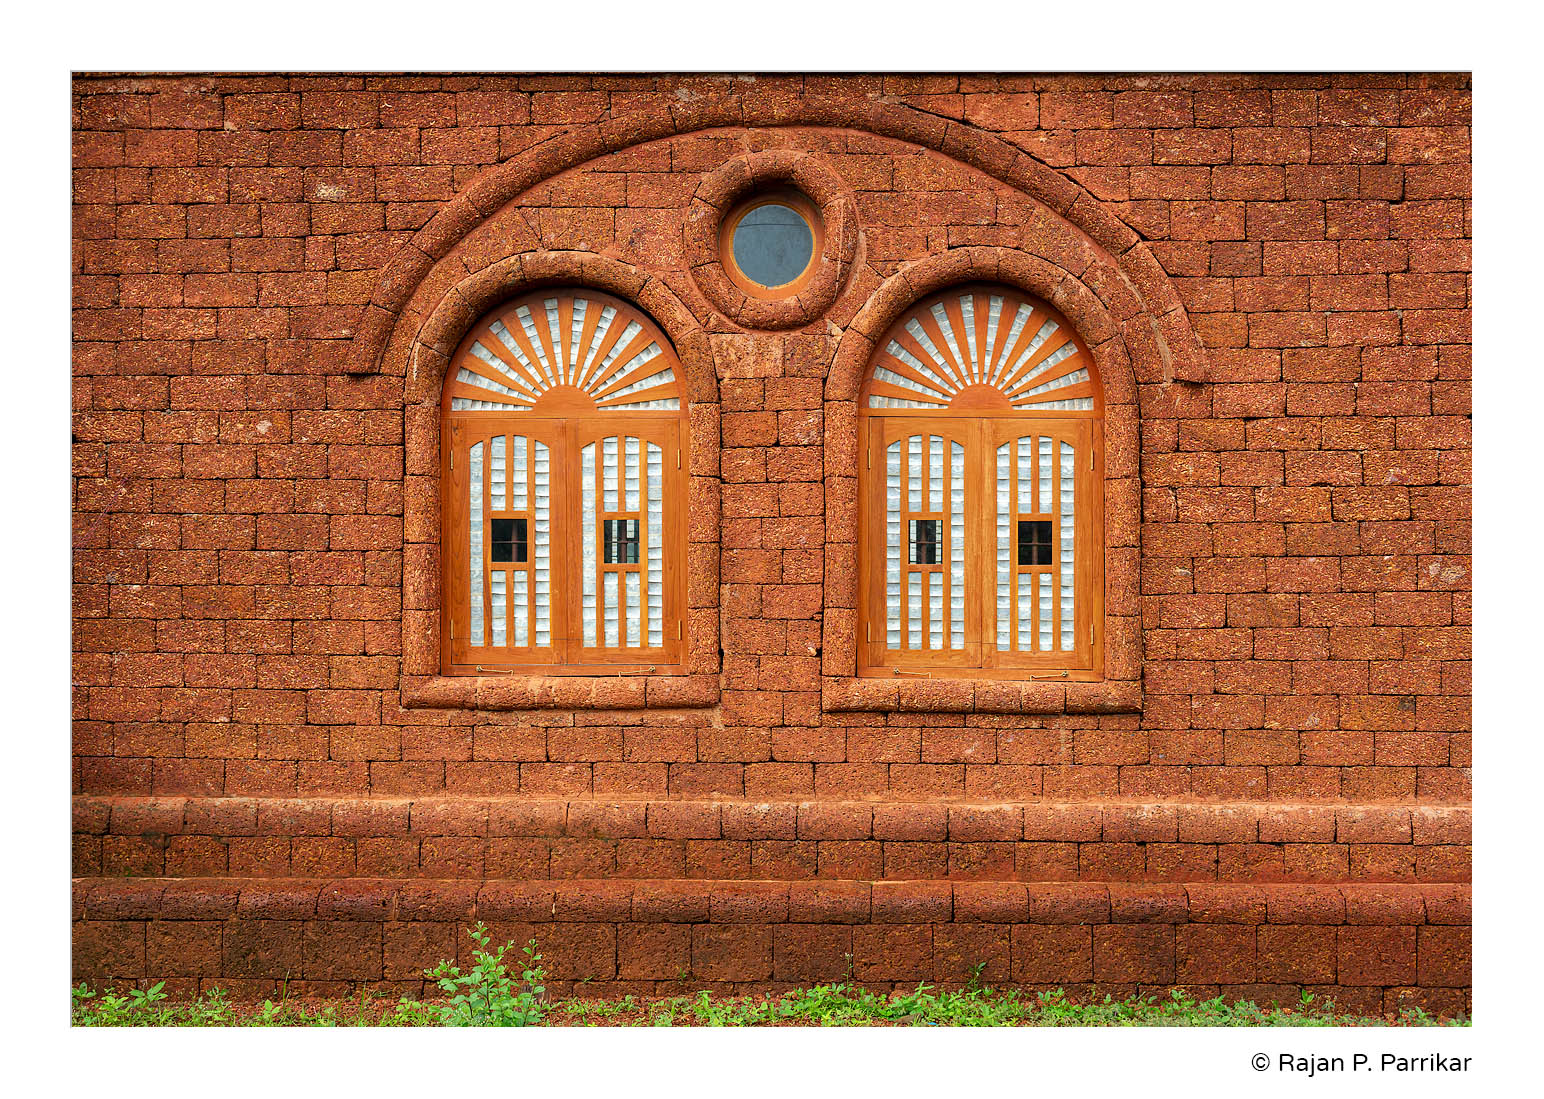 Arpora-Laterite-Nacre-Windows-Goa